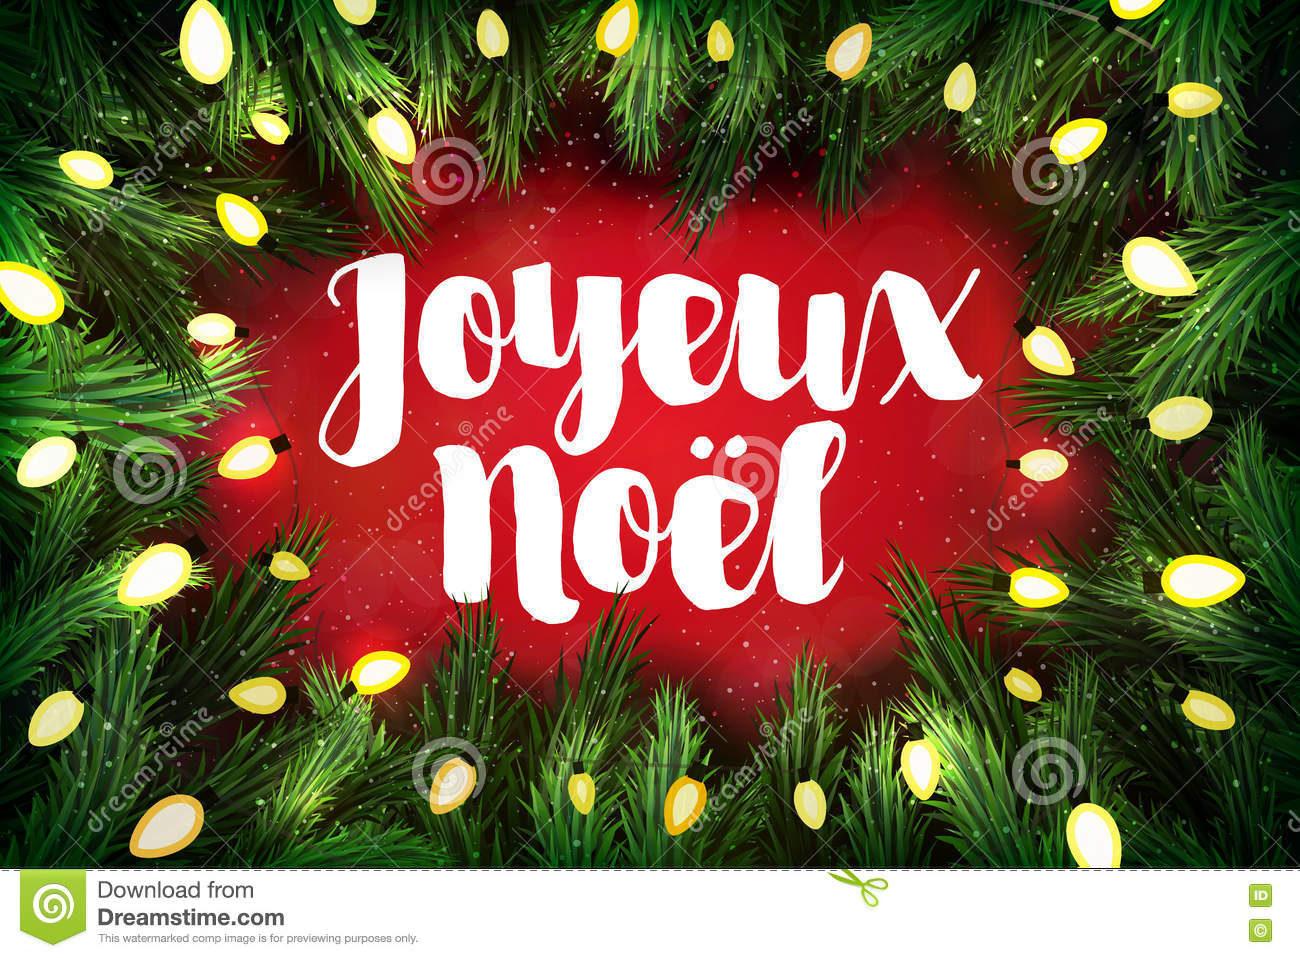 French Christmas Sayings Castrophotos